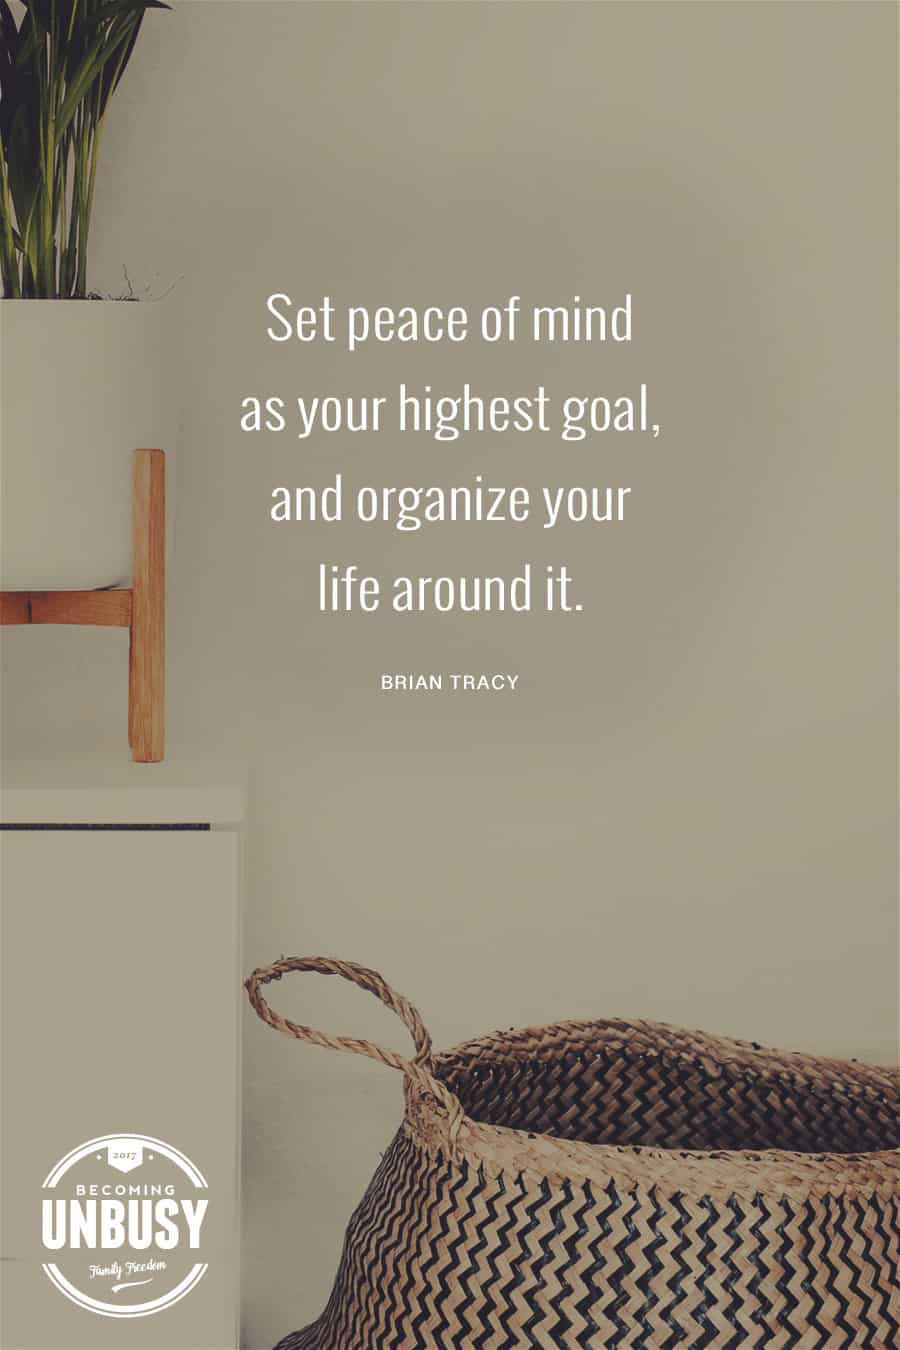 Set peace of mind as your highest goal, and organize your life around it. #quote #peace #becomingunbusy #minimalism *Loving this post on how white space at home creates white space in your life around it. #quote #peace #becomingunbusy #minimalism *Loving this post on how white space at home will create white space in your life